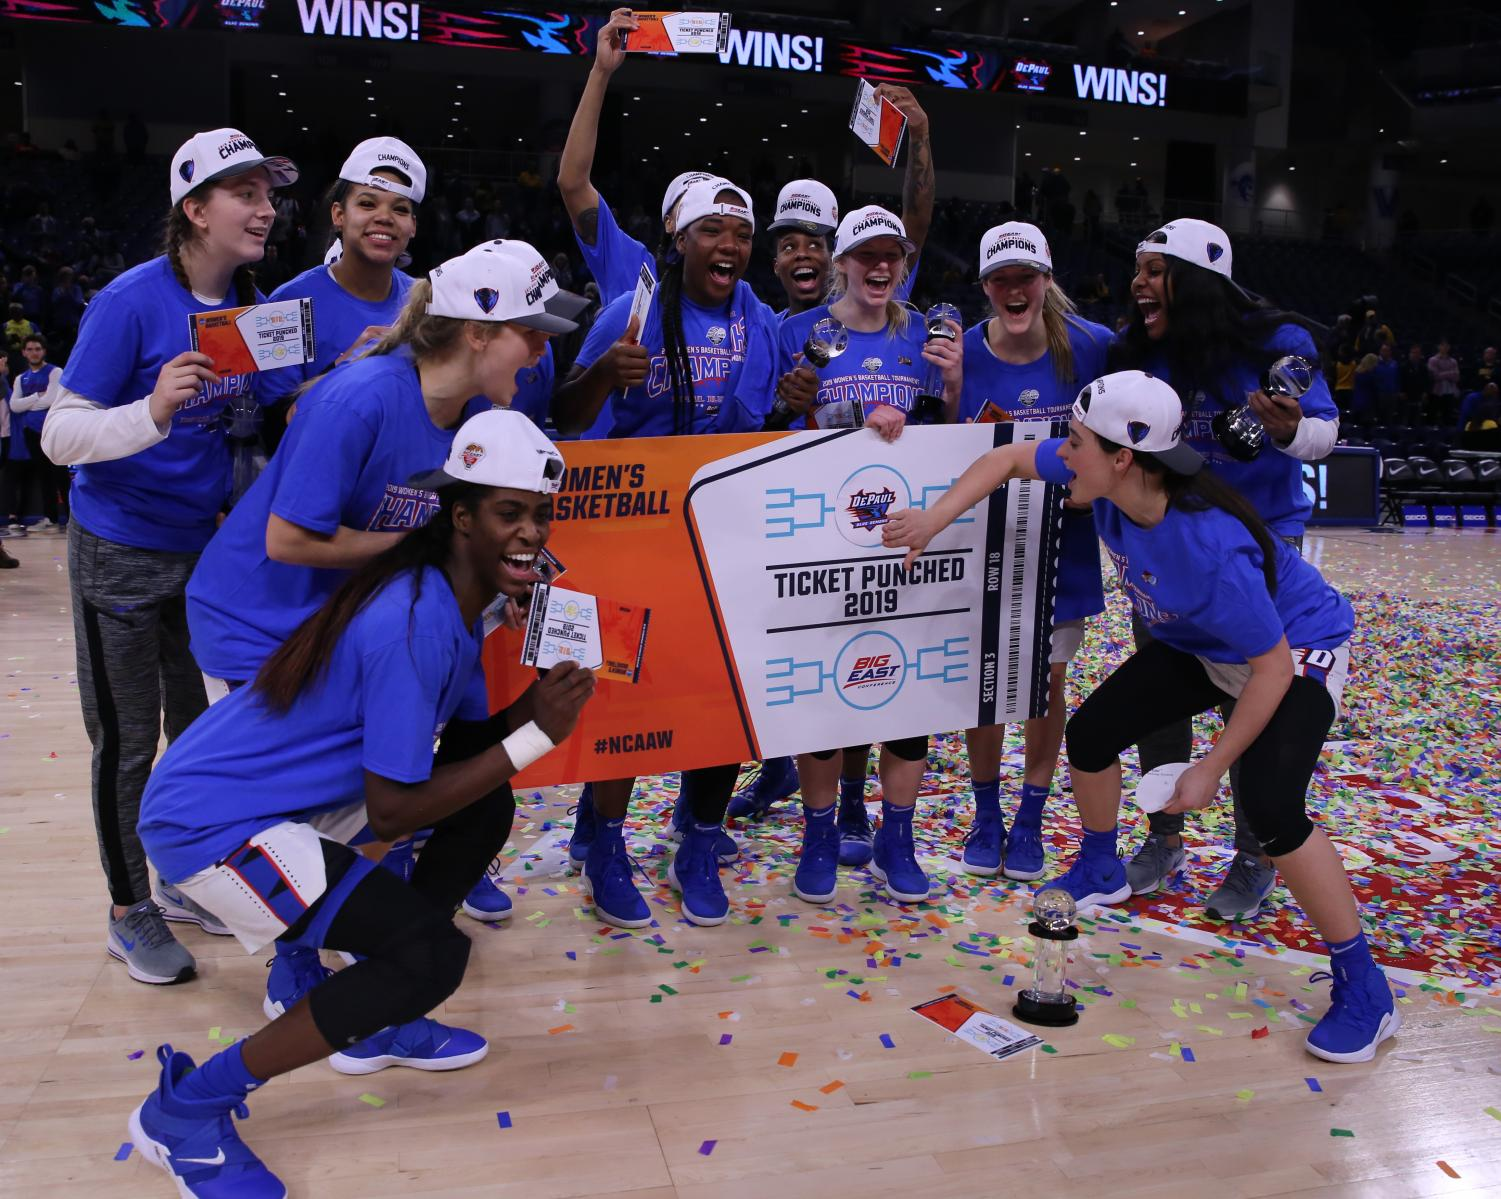 The+DePaul+players+pose+with+a+ticket+punched+poster+after+clinching+its+spot+in+the+NCAA+Tournament.+The+Blue+Demons+reached+the+tournament+for+the+17th+straight+season.+Alexa+Sandler+%7C+The+DePaulia